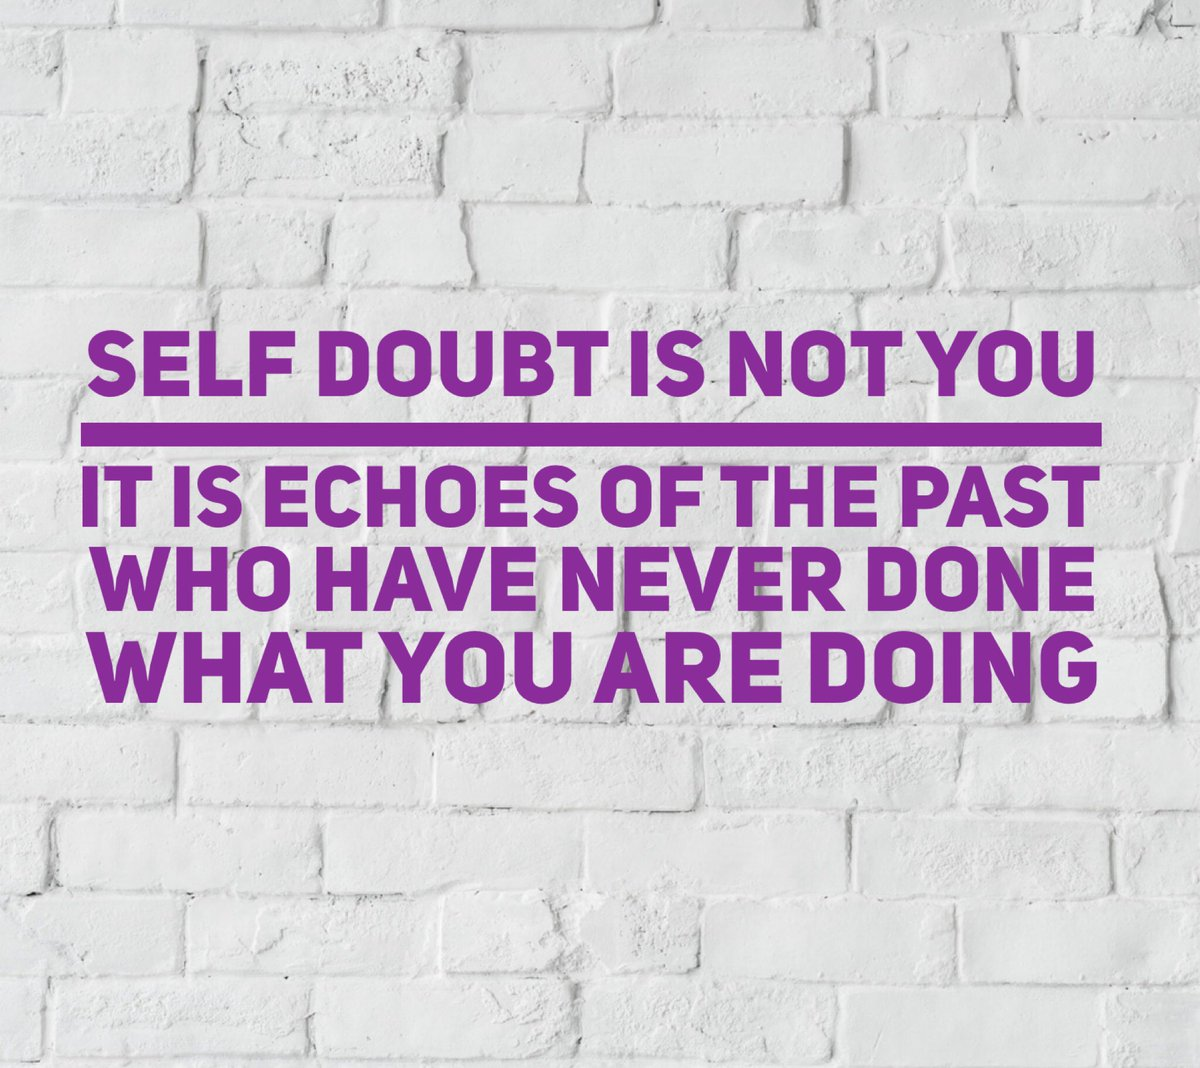 Self doubt is not you. It's echoes of the past, who have never done what you're doing. Learn to silence them. Let's #rewire #refocus #reengage #womenwhohustle #mawb #mawbfebruary #earlyriser #focus #passion #selfdoubt #selftalk #selfconfidence #businesscoach #businesscoaching